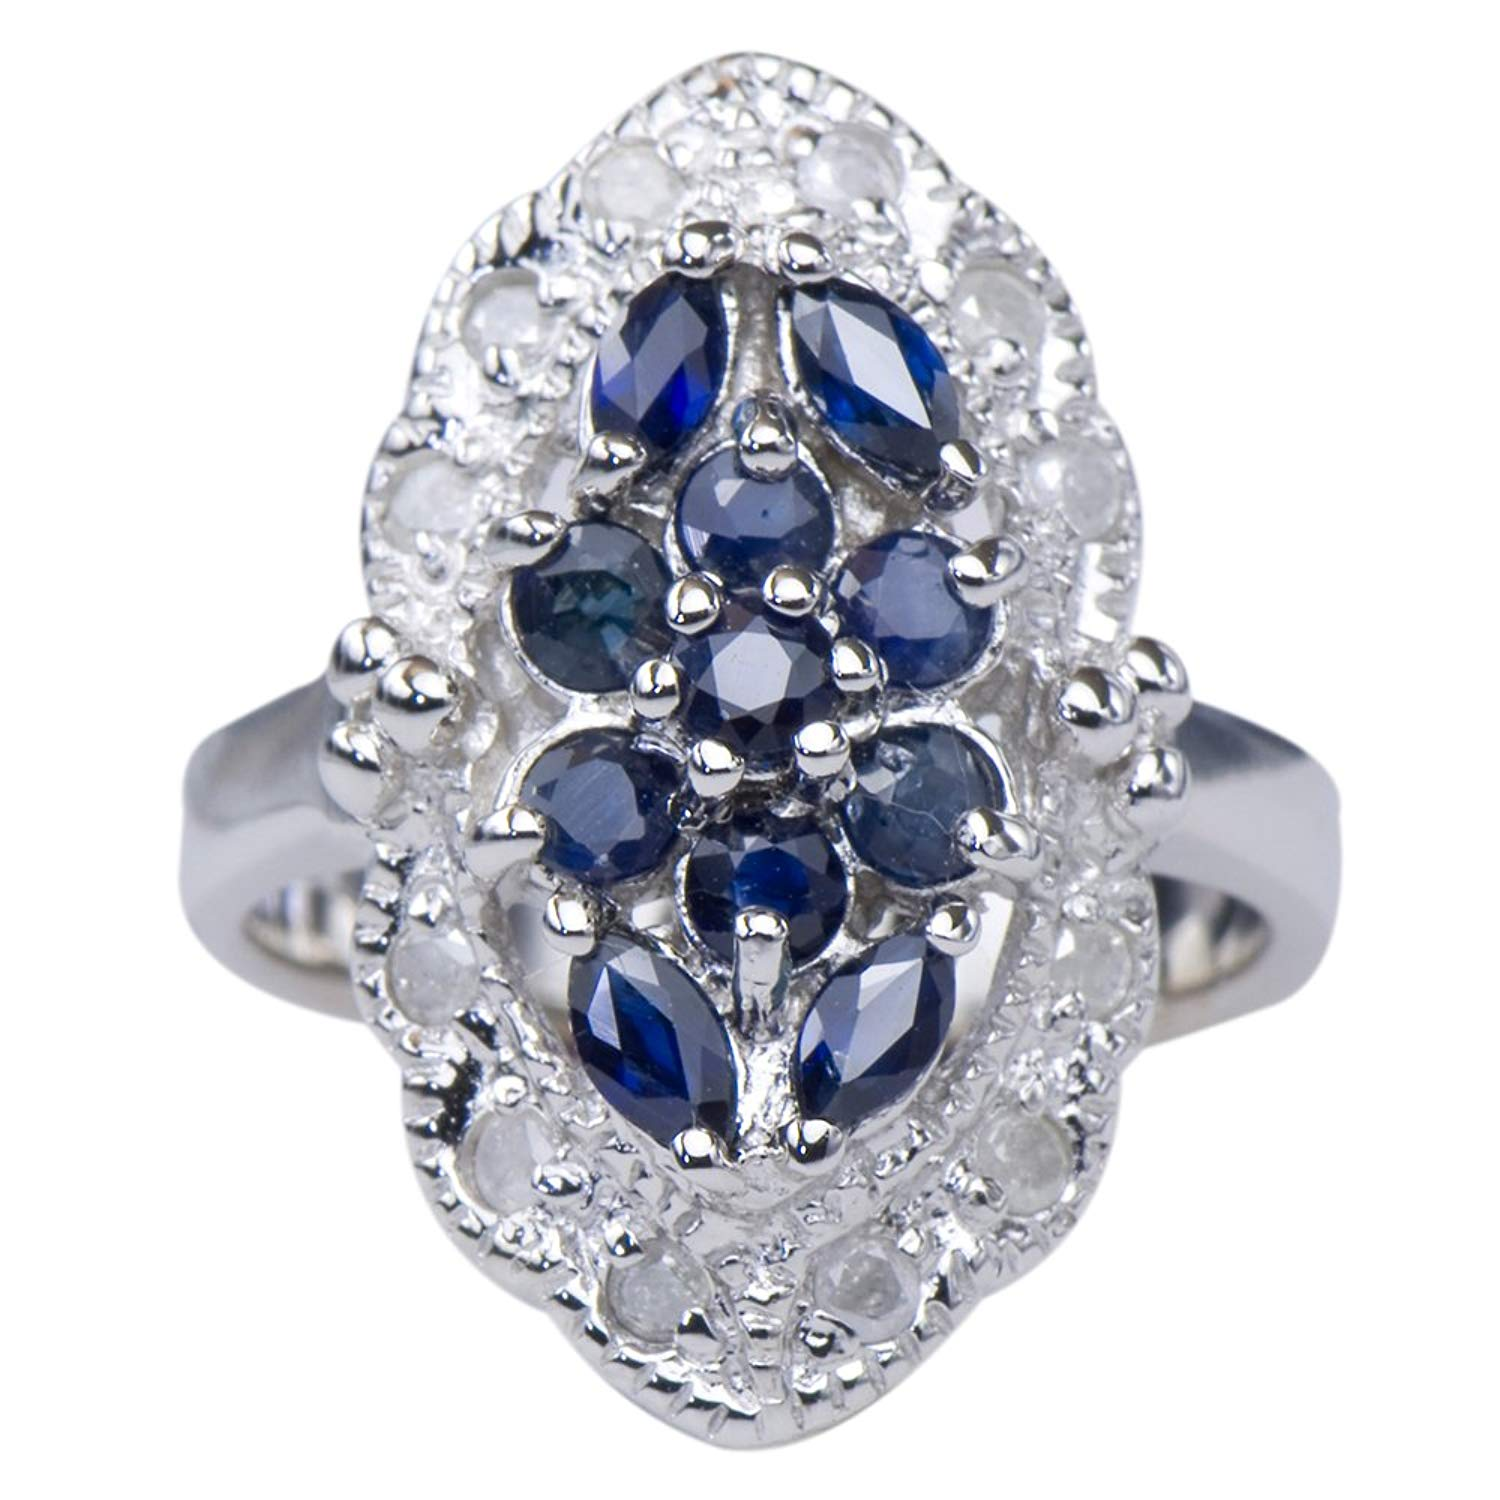 Caratera Fine Jewelry Marquise Sapphire Natural Gemstone Diamond 925 Sterling Silver Jewelry Band Ring